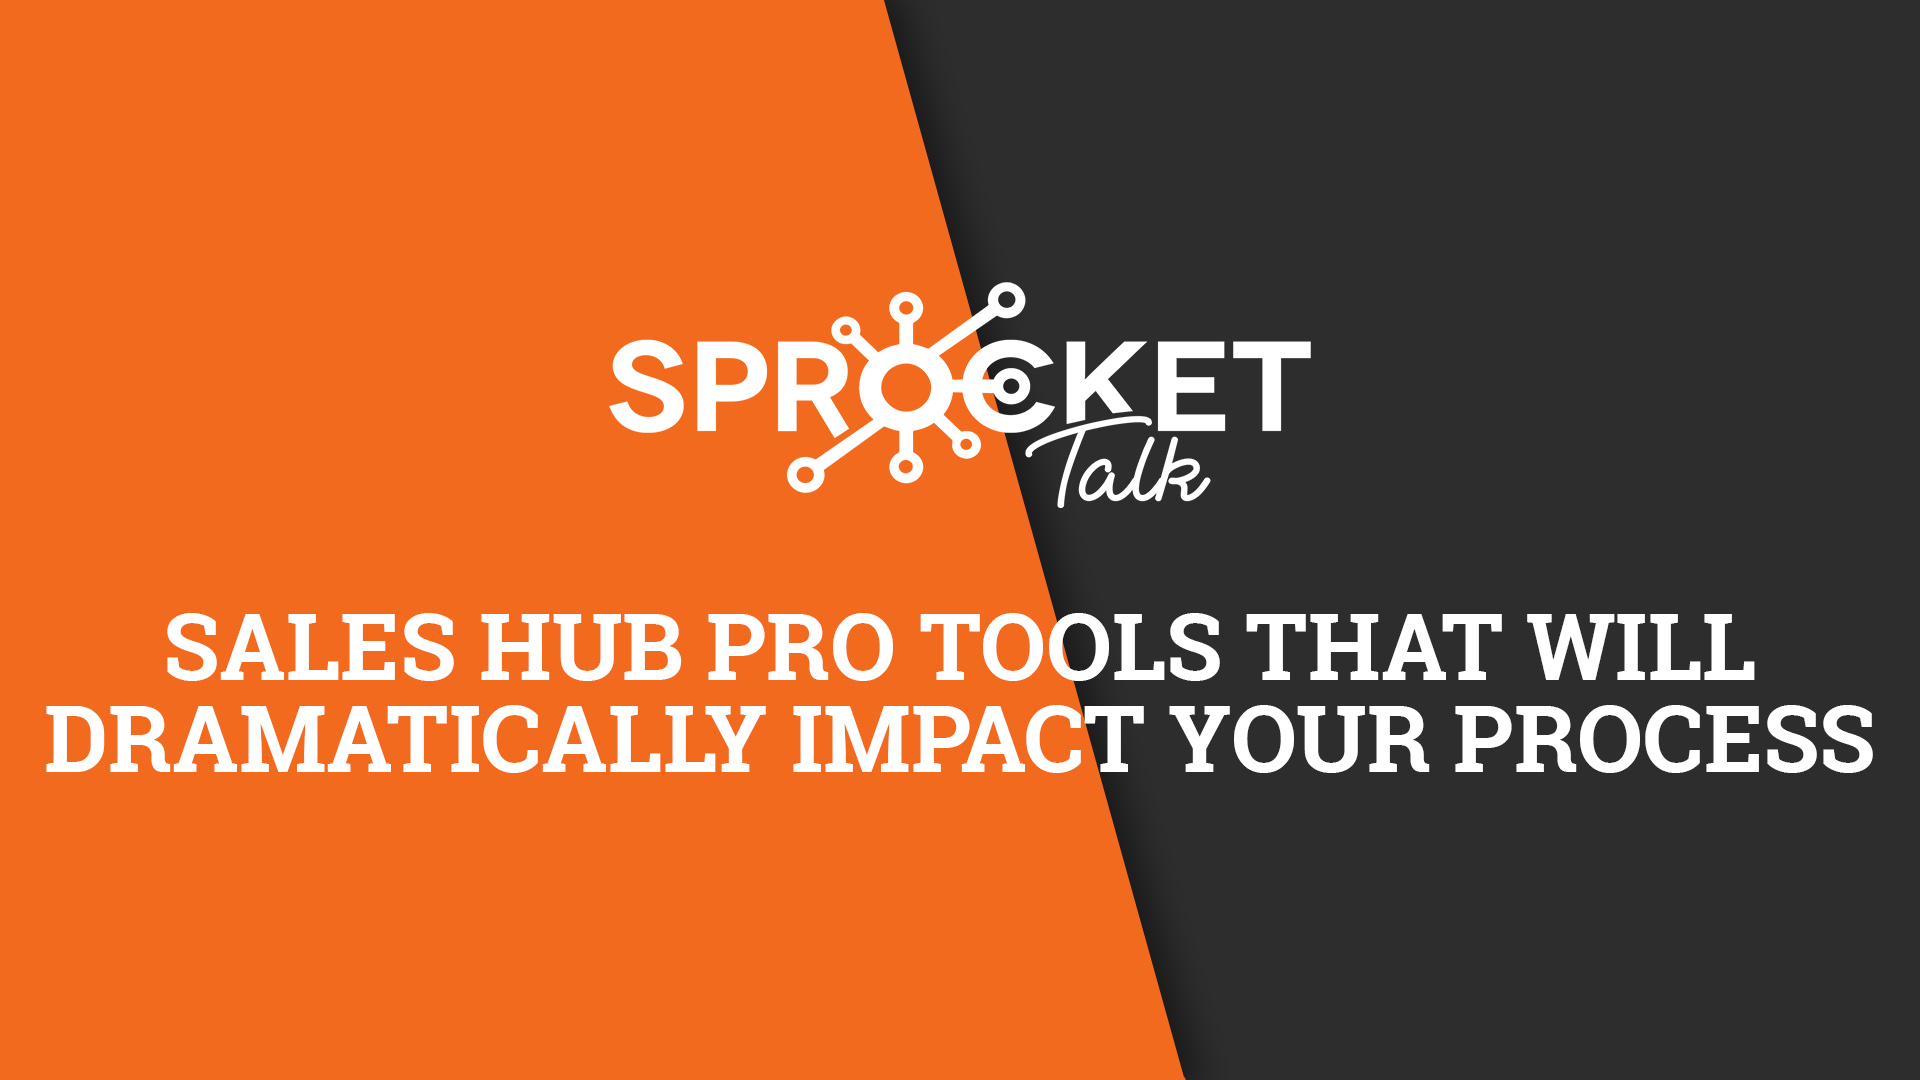 Sales Hub Pro Tools That Will Dramatically Impact Your Process